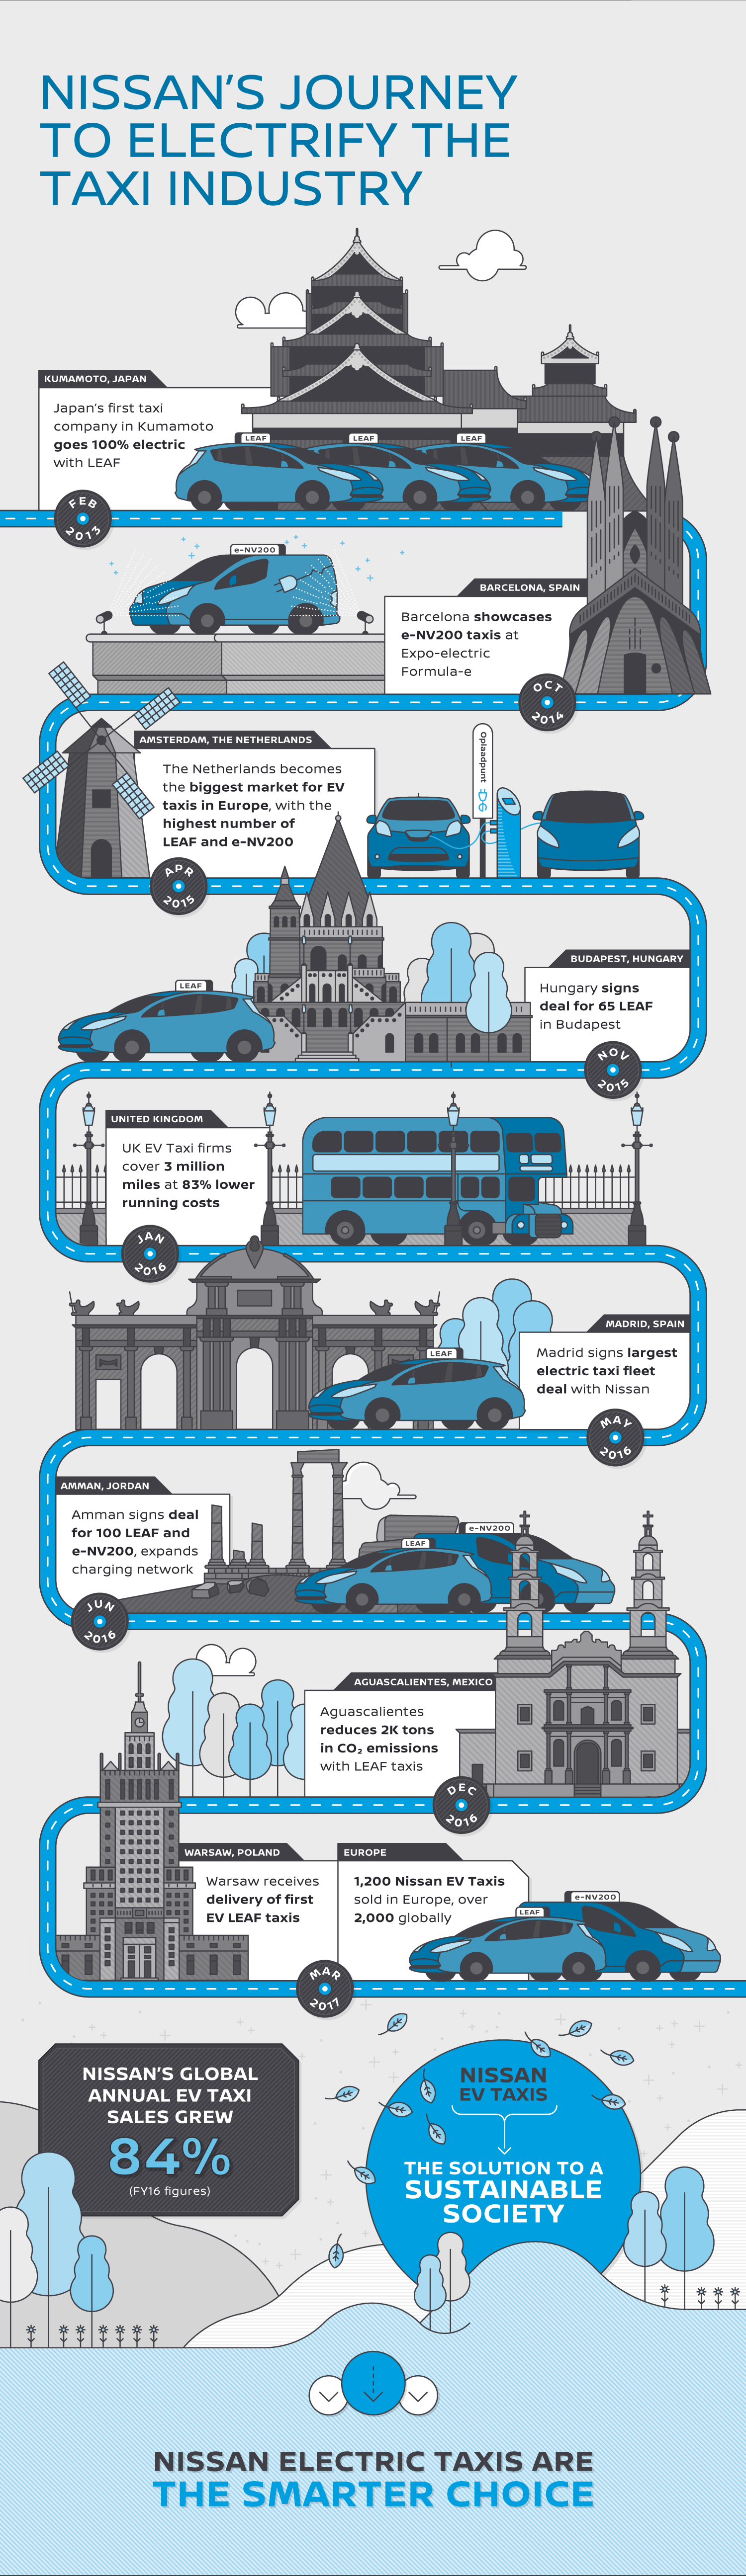 Road Towards an Electric Taxi Revolution Infographic | Nissan | Makemark